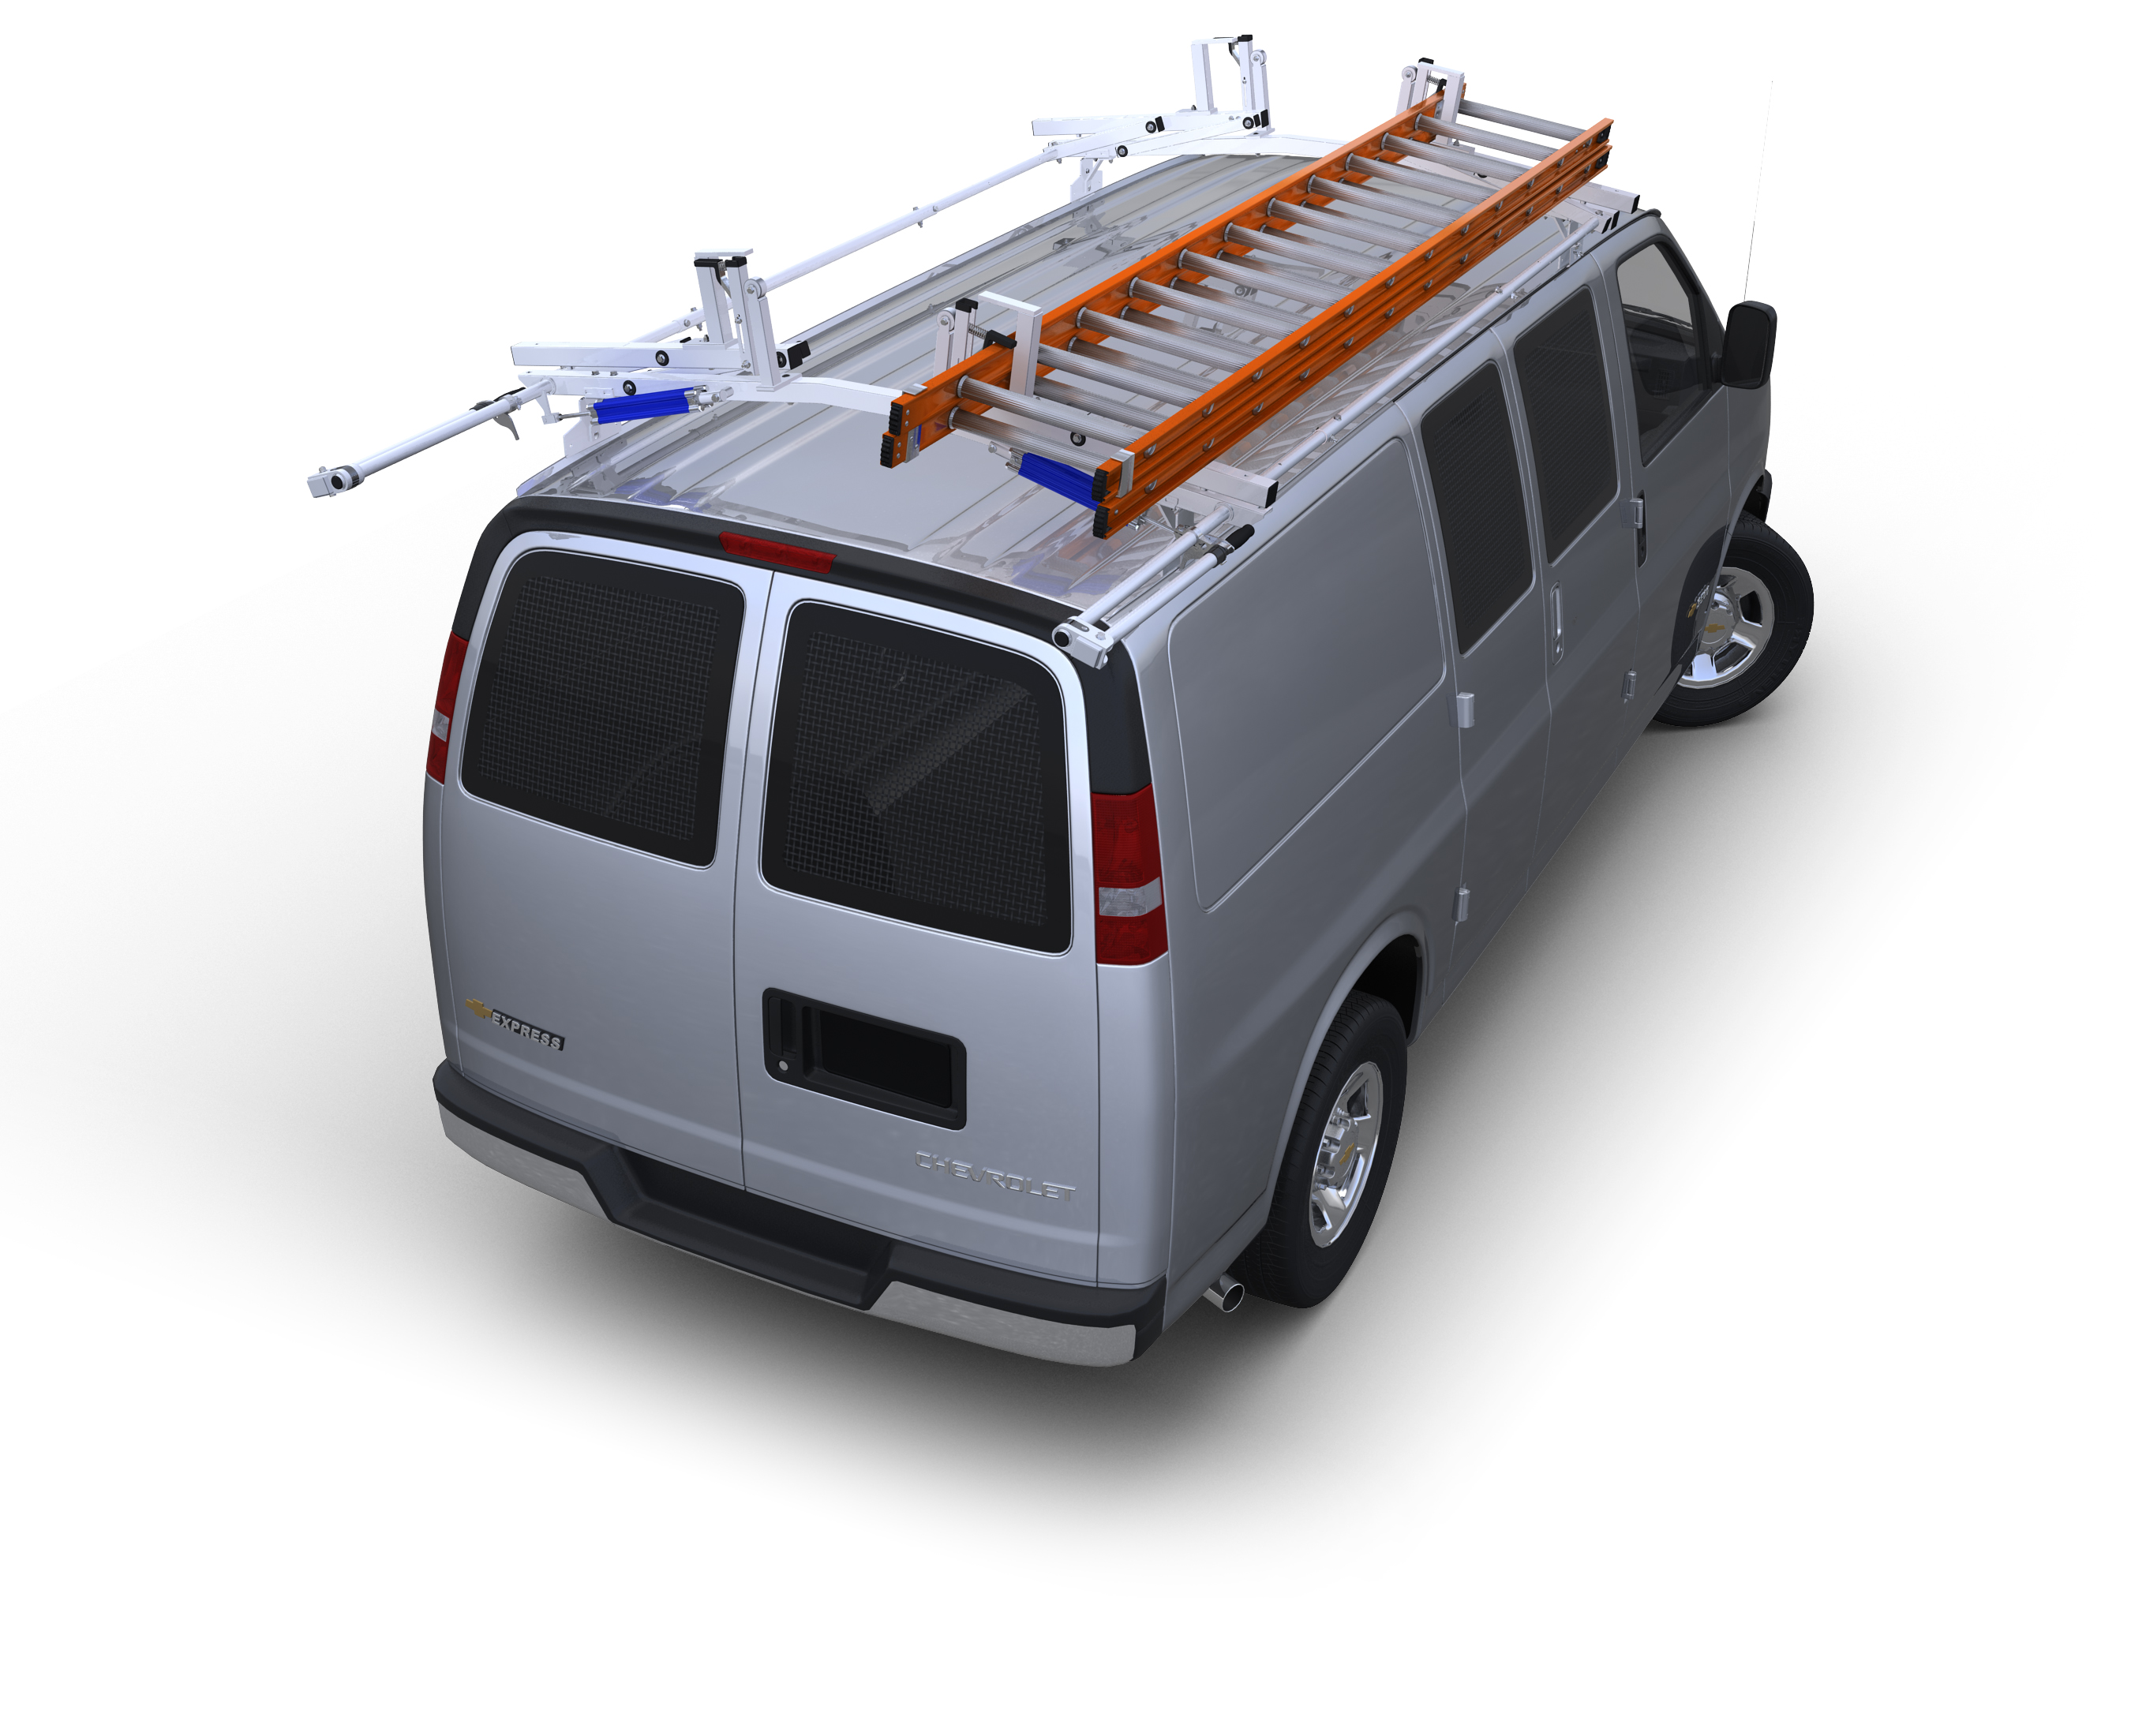 Surco Stainless Steel Van Ladders